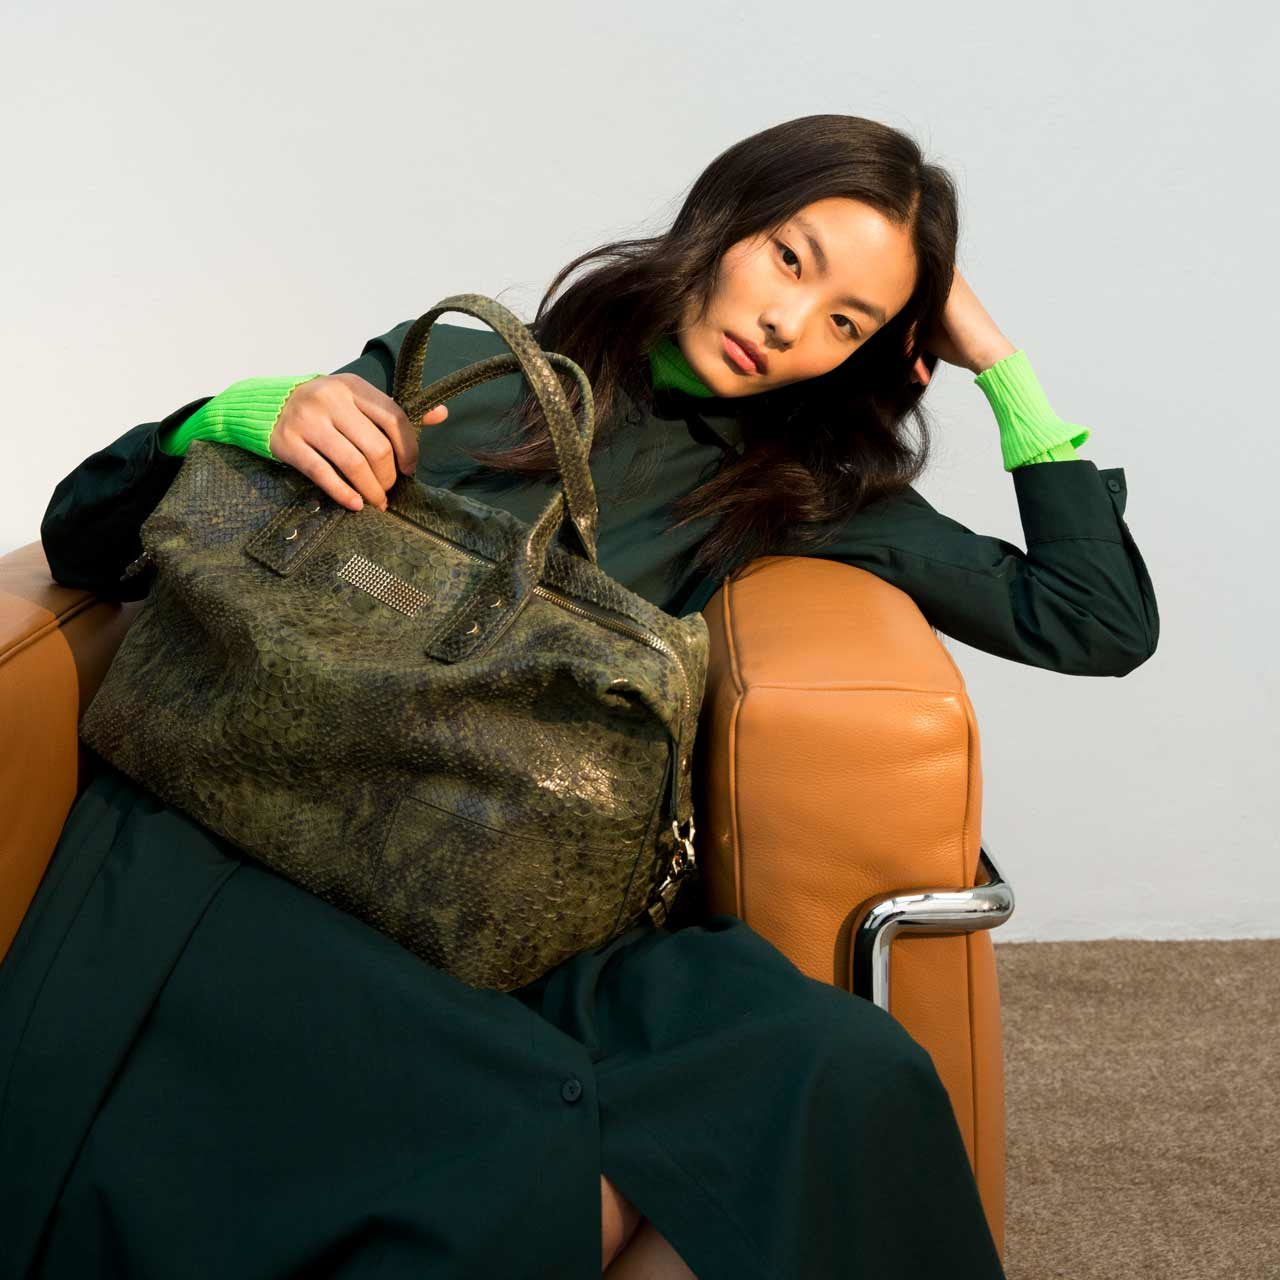 Collection automne-hiver 2020 Clio Goldbrenner